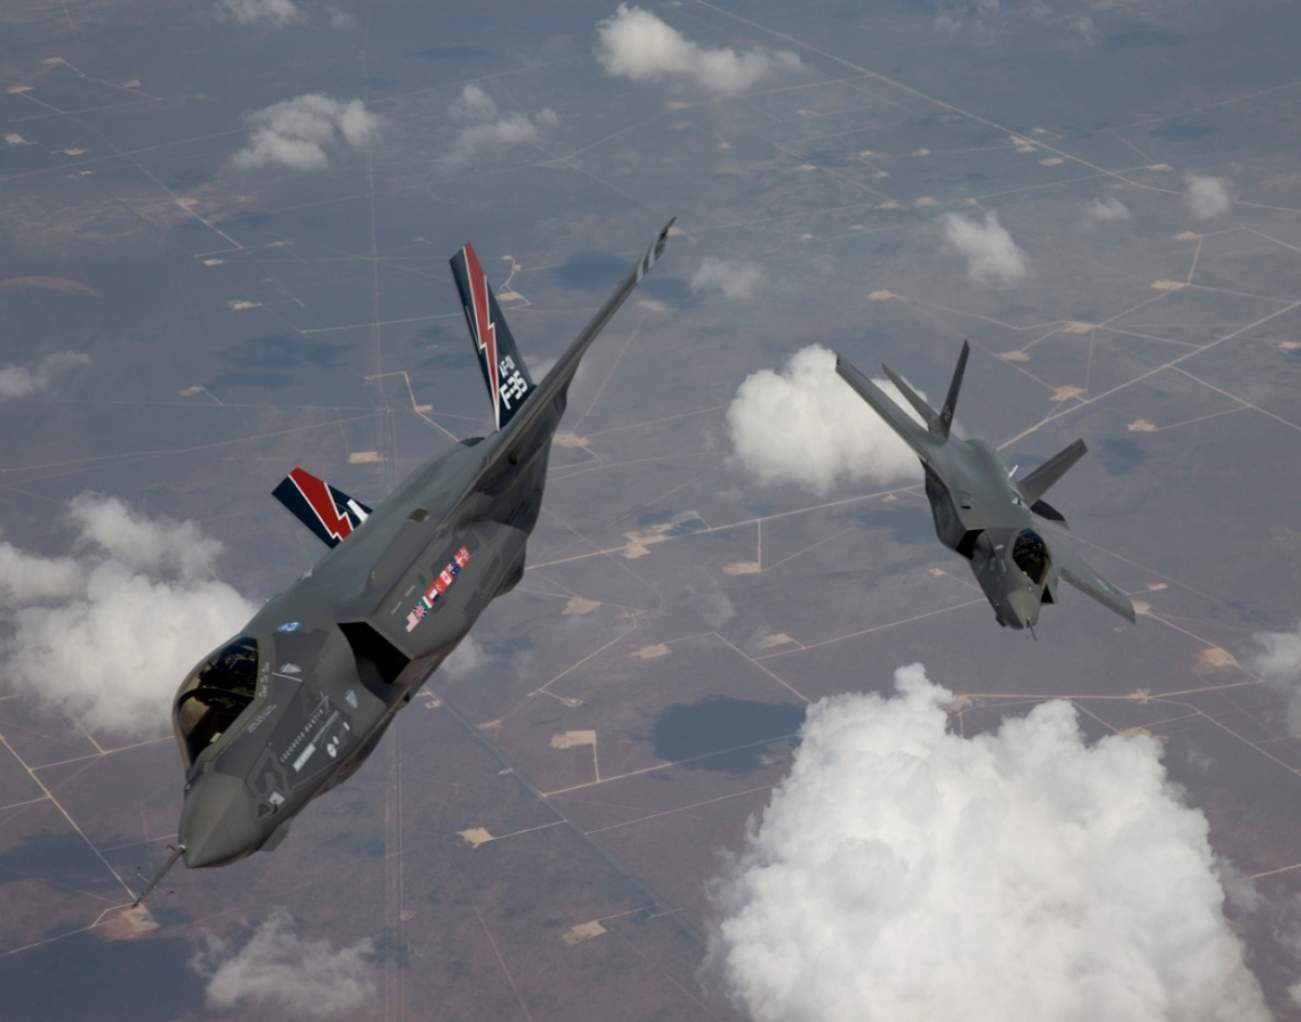 The U.S. Air Force (Using F-35s) Is Learning How To Defeat Russia's S-400 Air Defenses